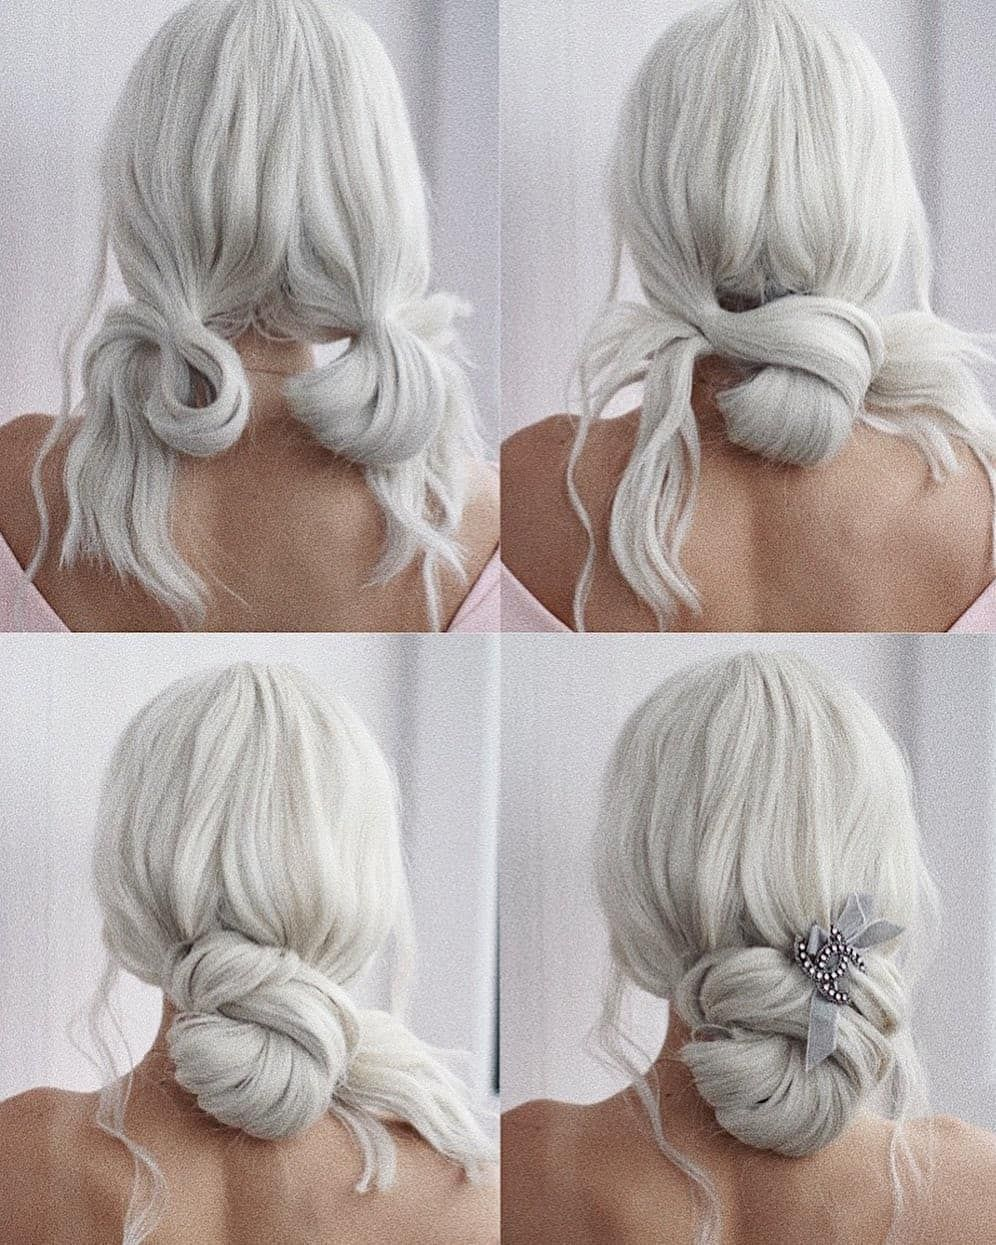 "HAIRFY Hair Tutorials on Instagram: ""Stunning Hairstyle tutorial"